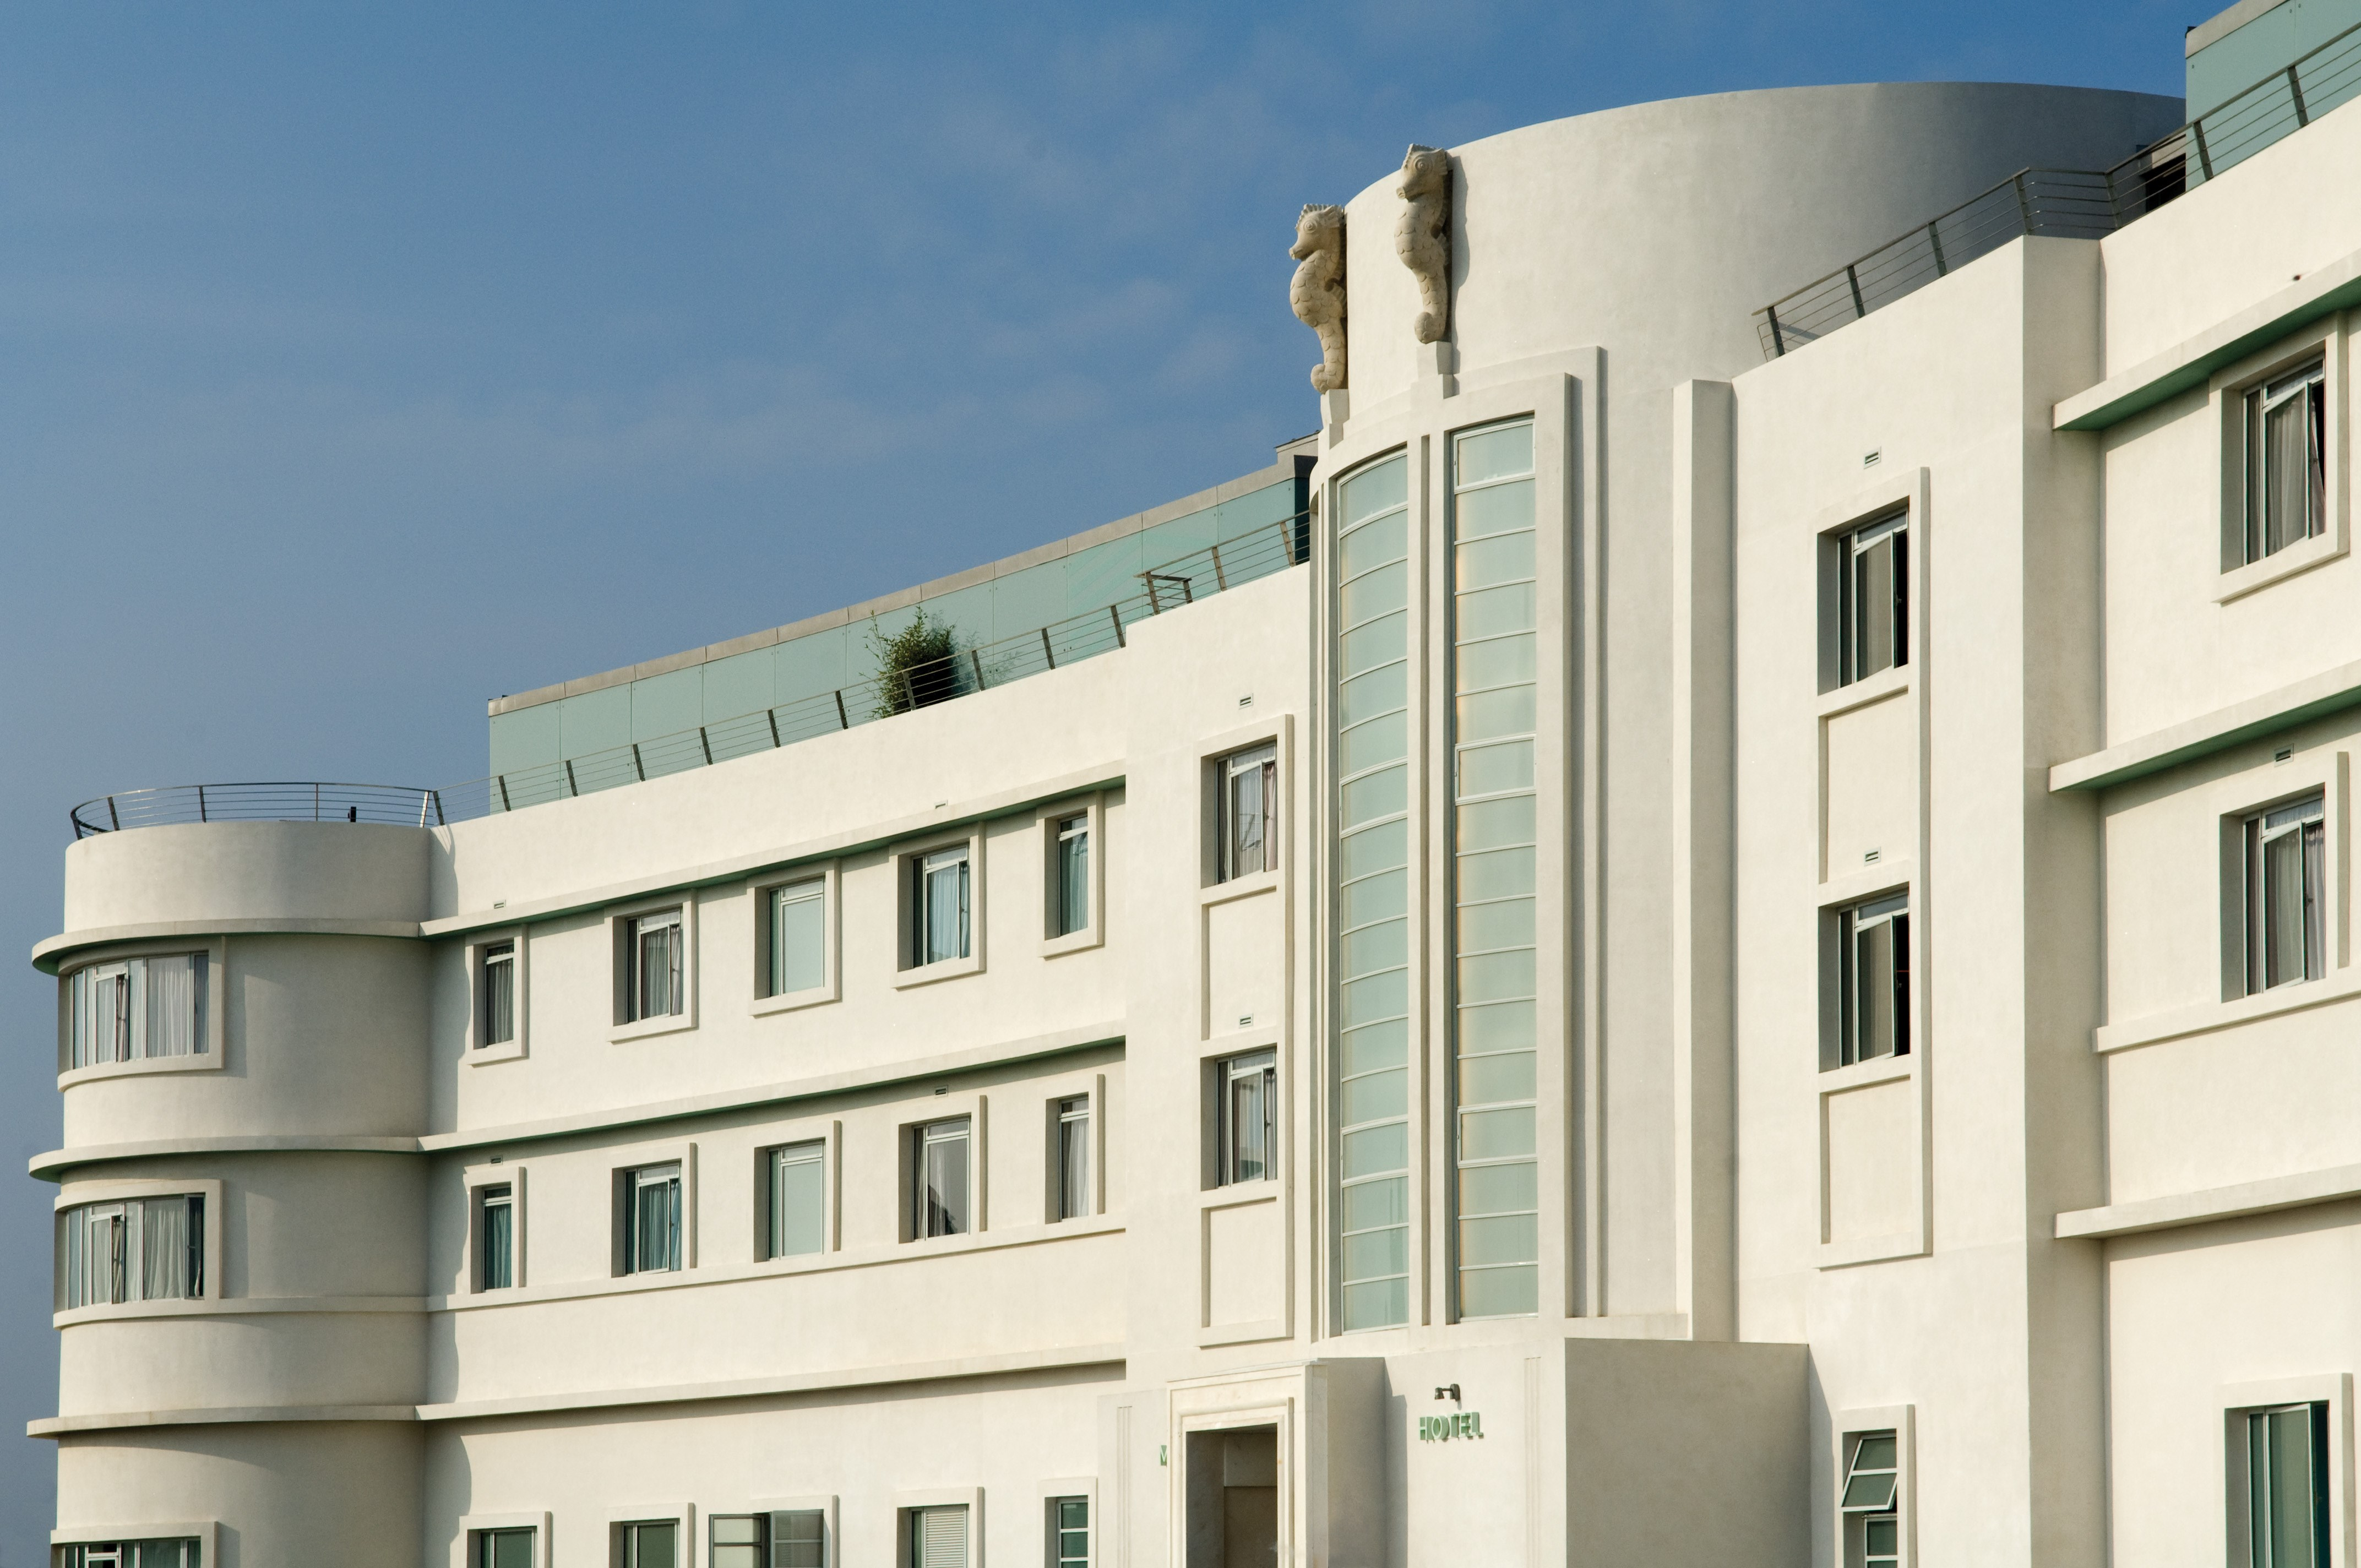 The 4* Midland in Morecambe